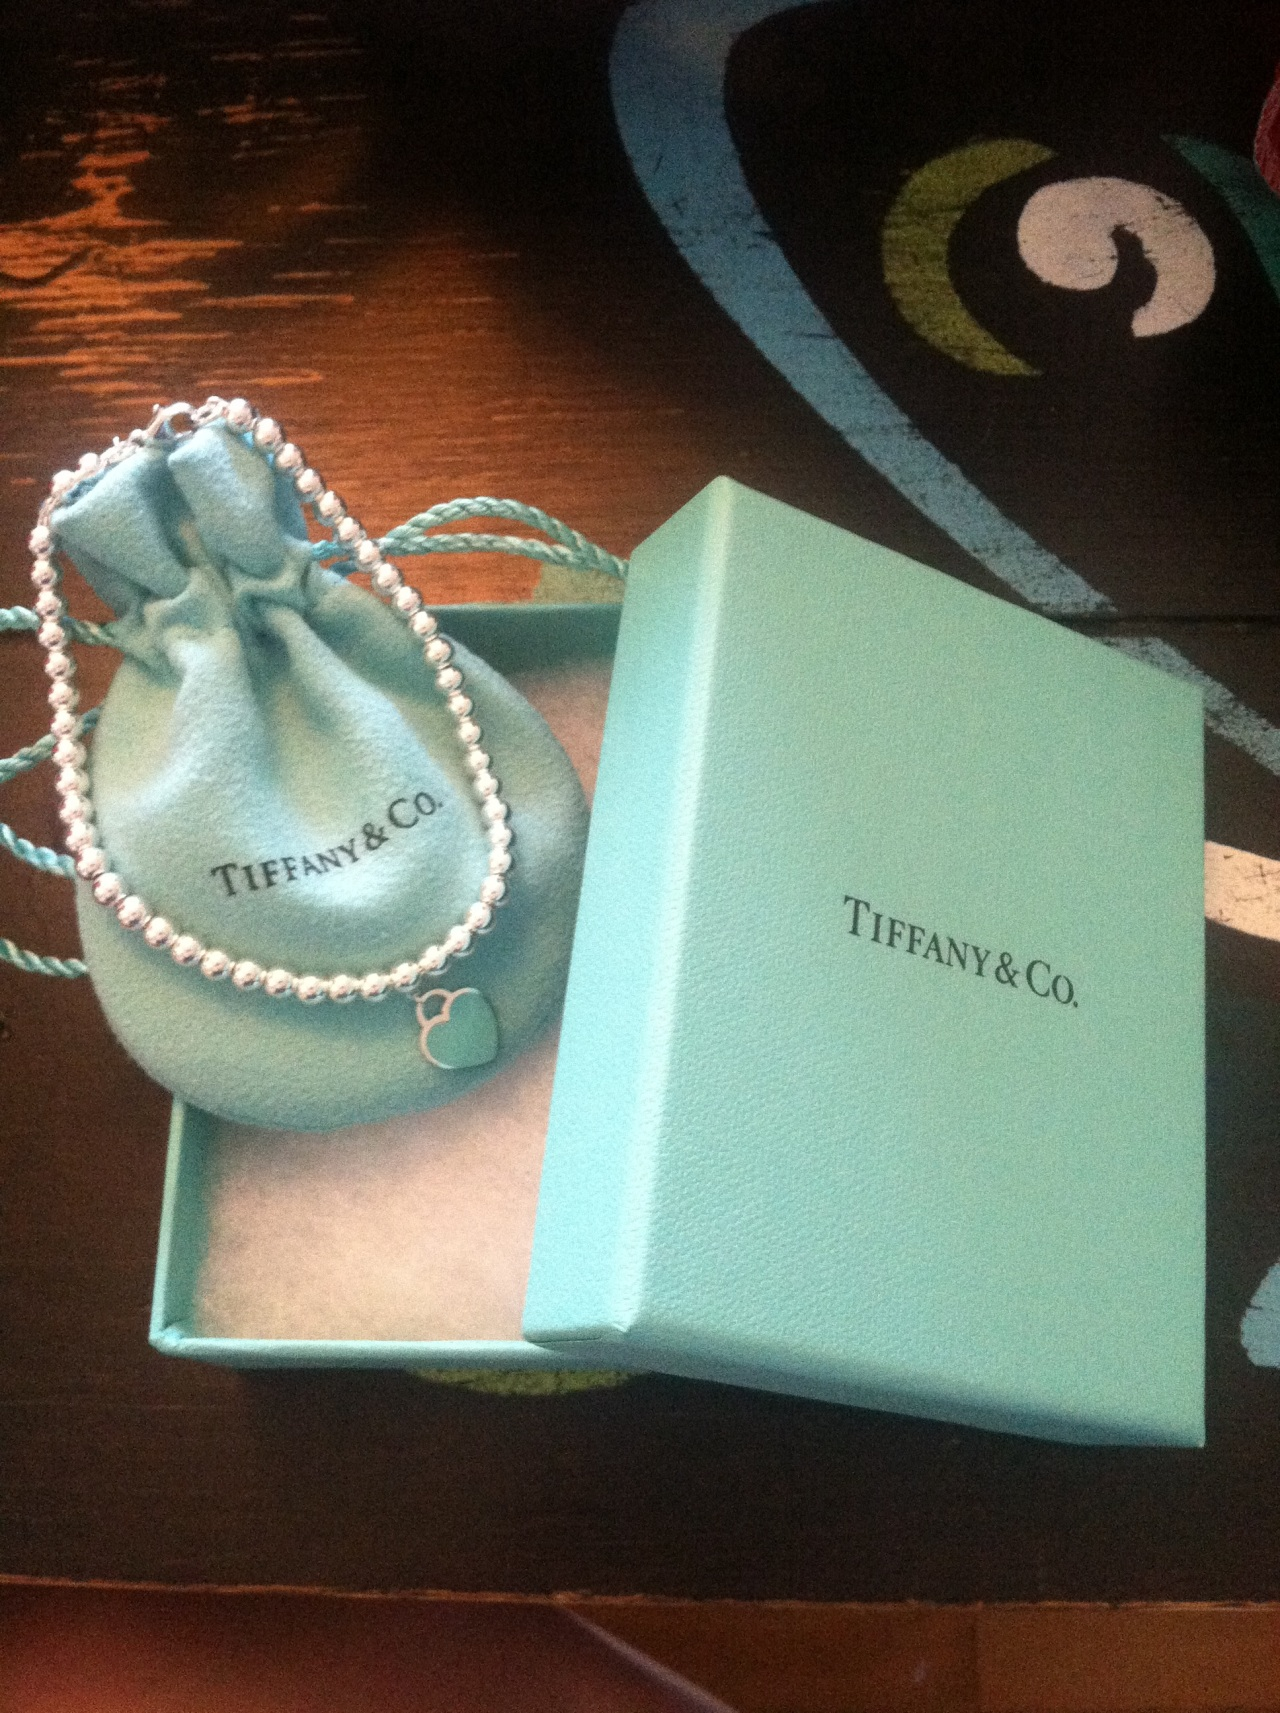 He went to Jarred--NOPE--He went to Tiffany & Co. *wink*